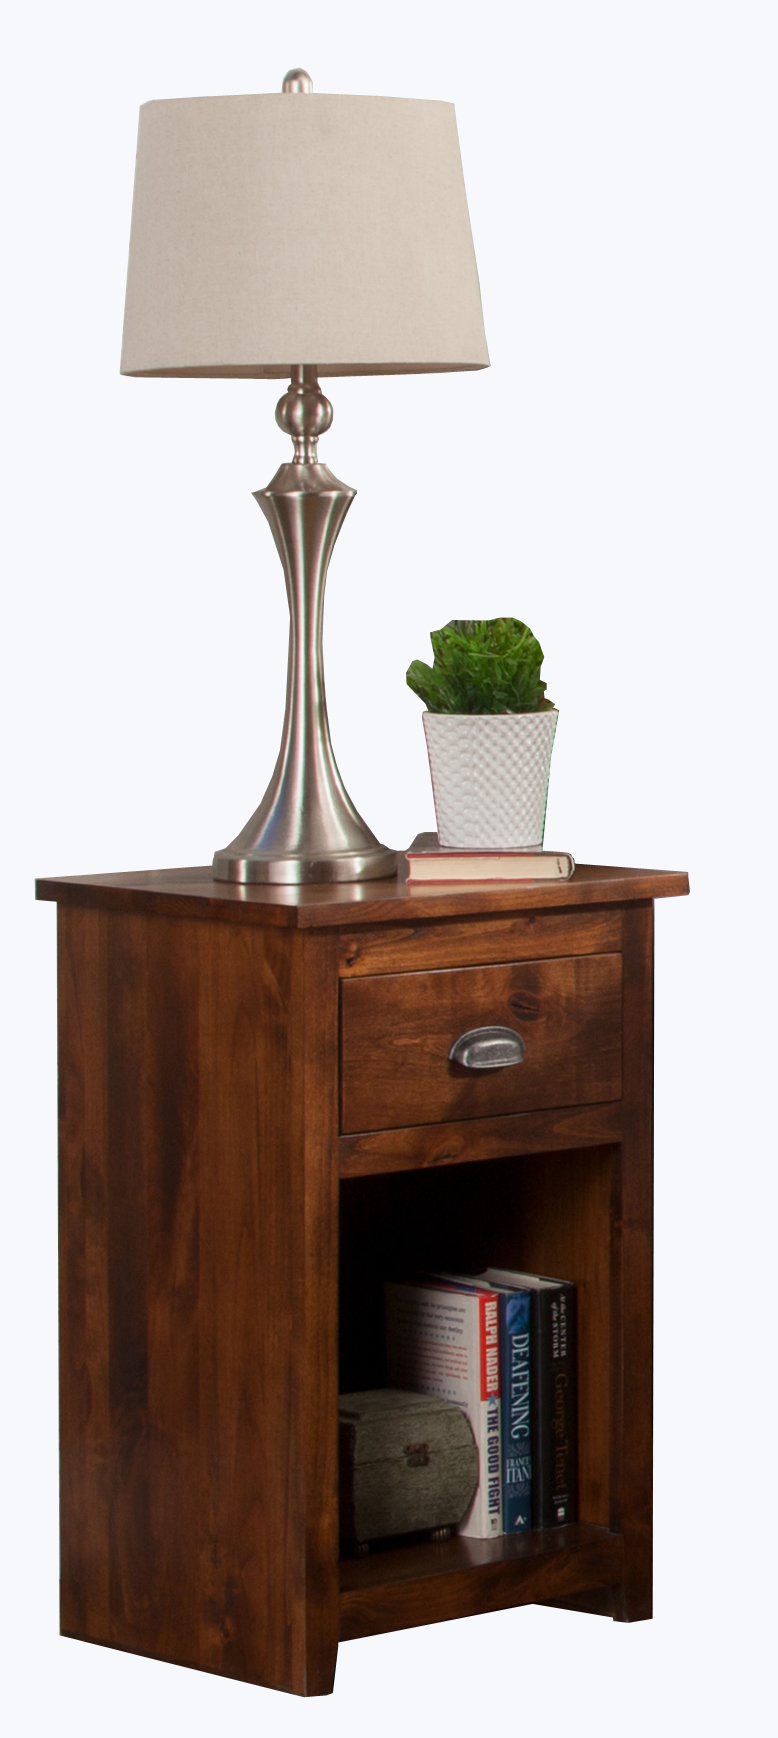 a r447 one drawer night stand odc products. Black Bedroom Furniture Sets. Home Design Ideas